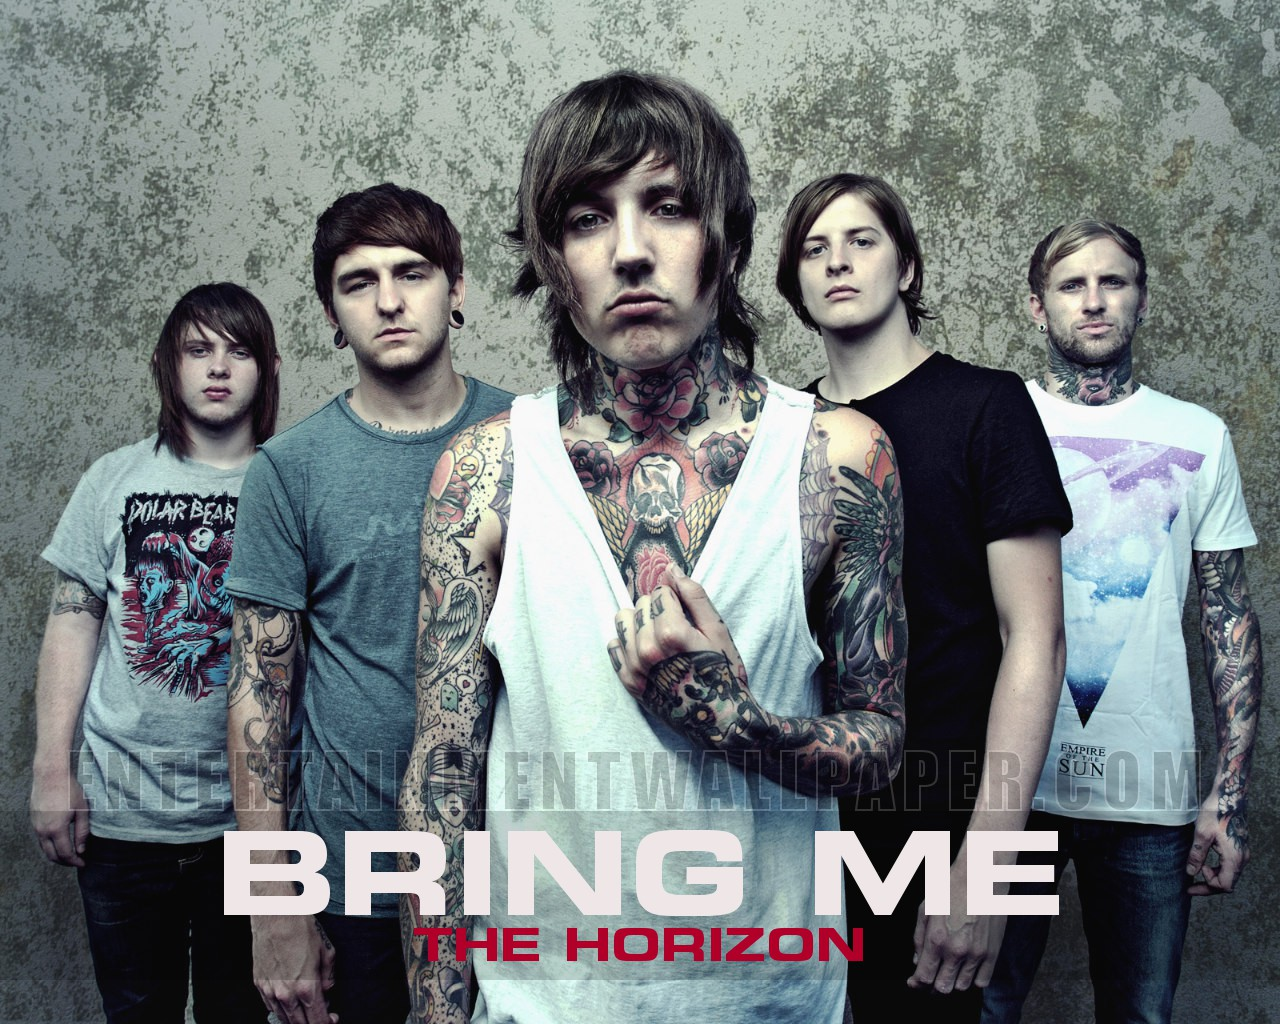 bring me the horizon bring me the horizon wallpaper 1280x1024 69156 709